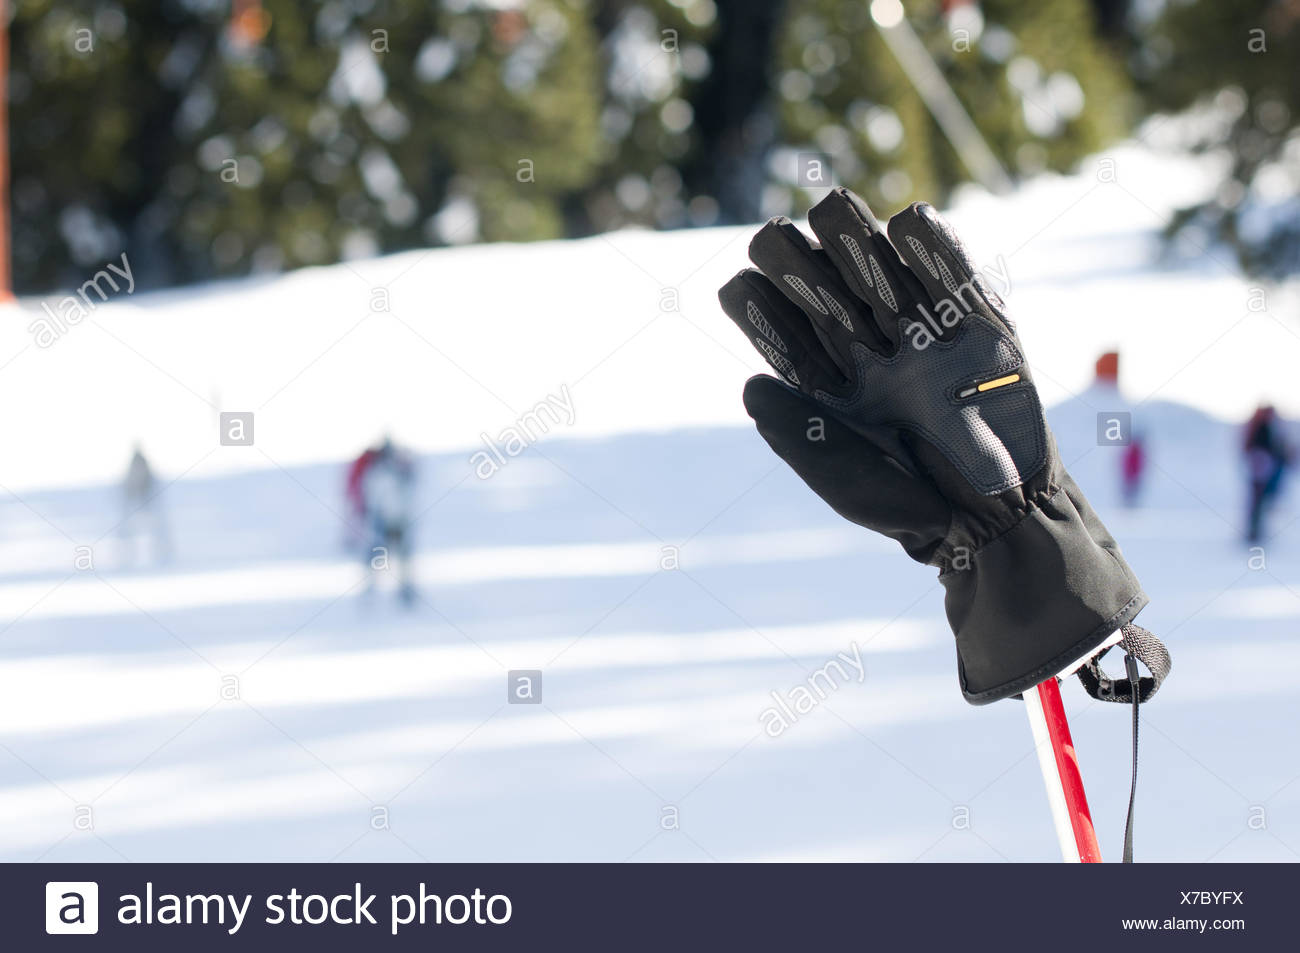 Ski gloves and sticks. Winter tourists on the background - Stock Image